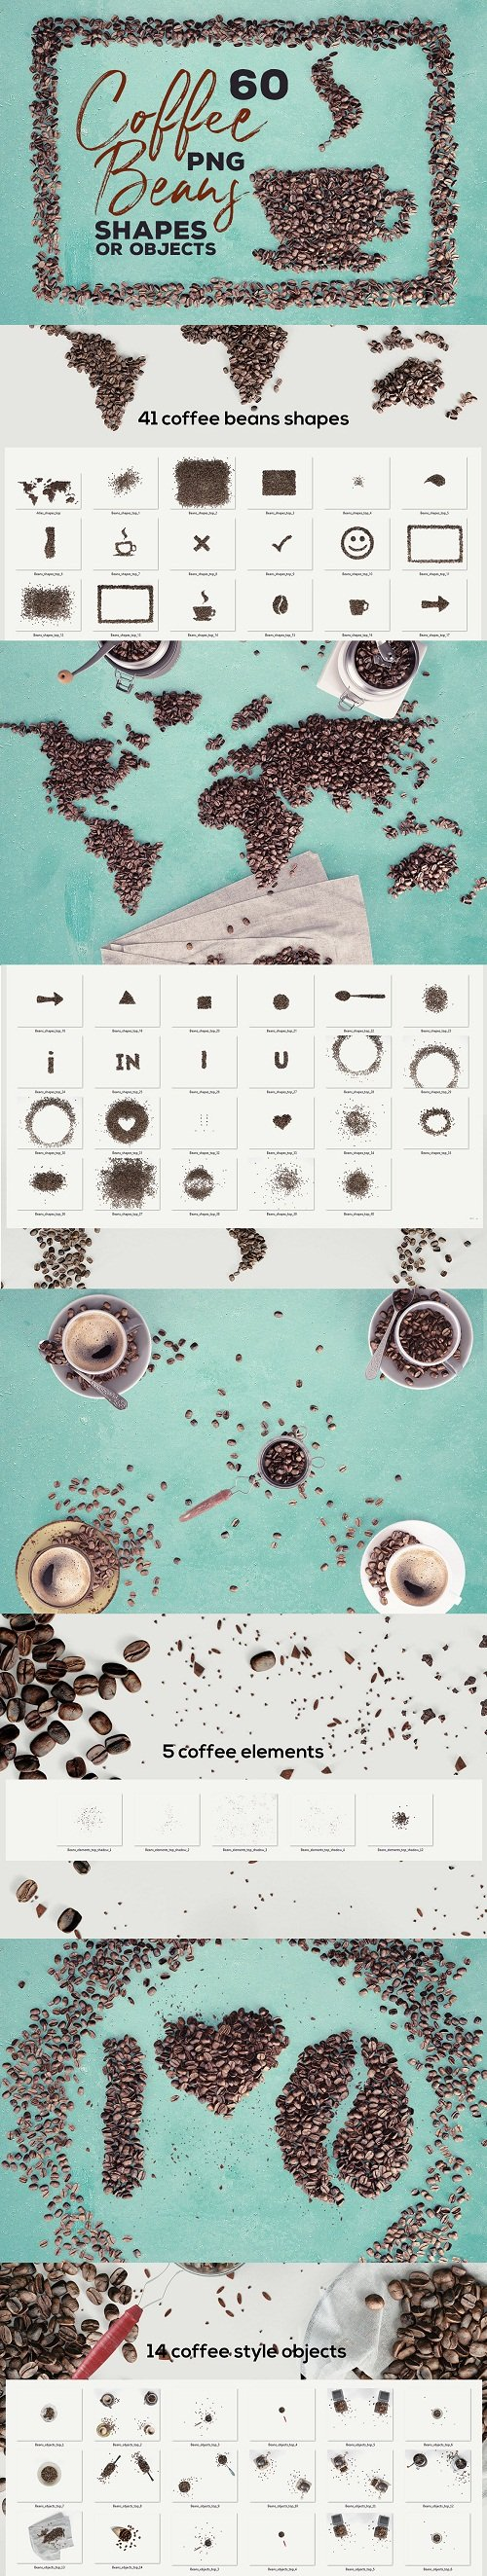 60 Coffee Beans - PNG Shapes & Objects 216772